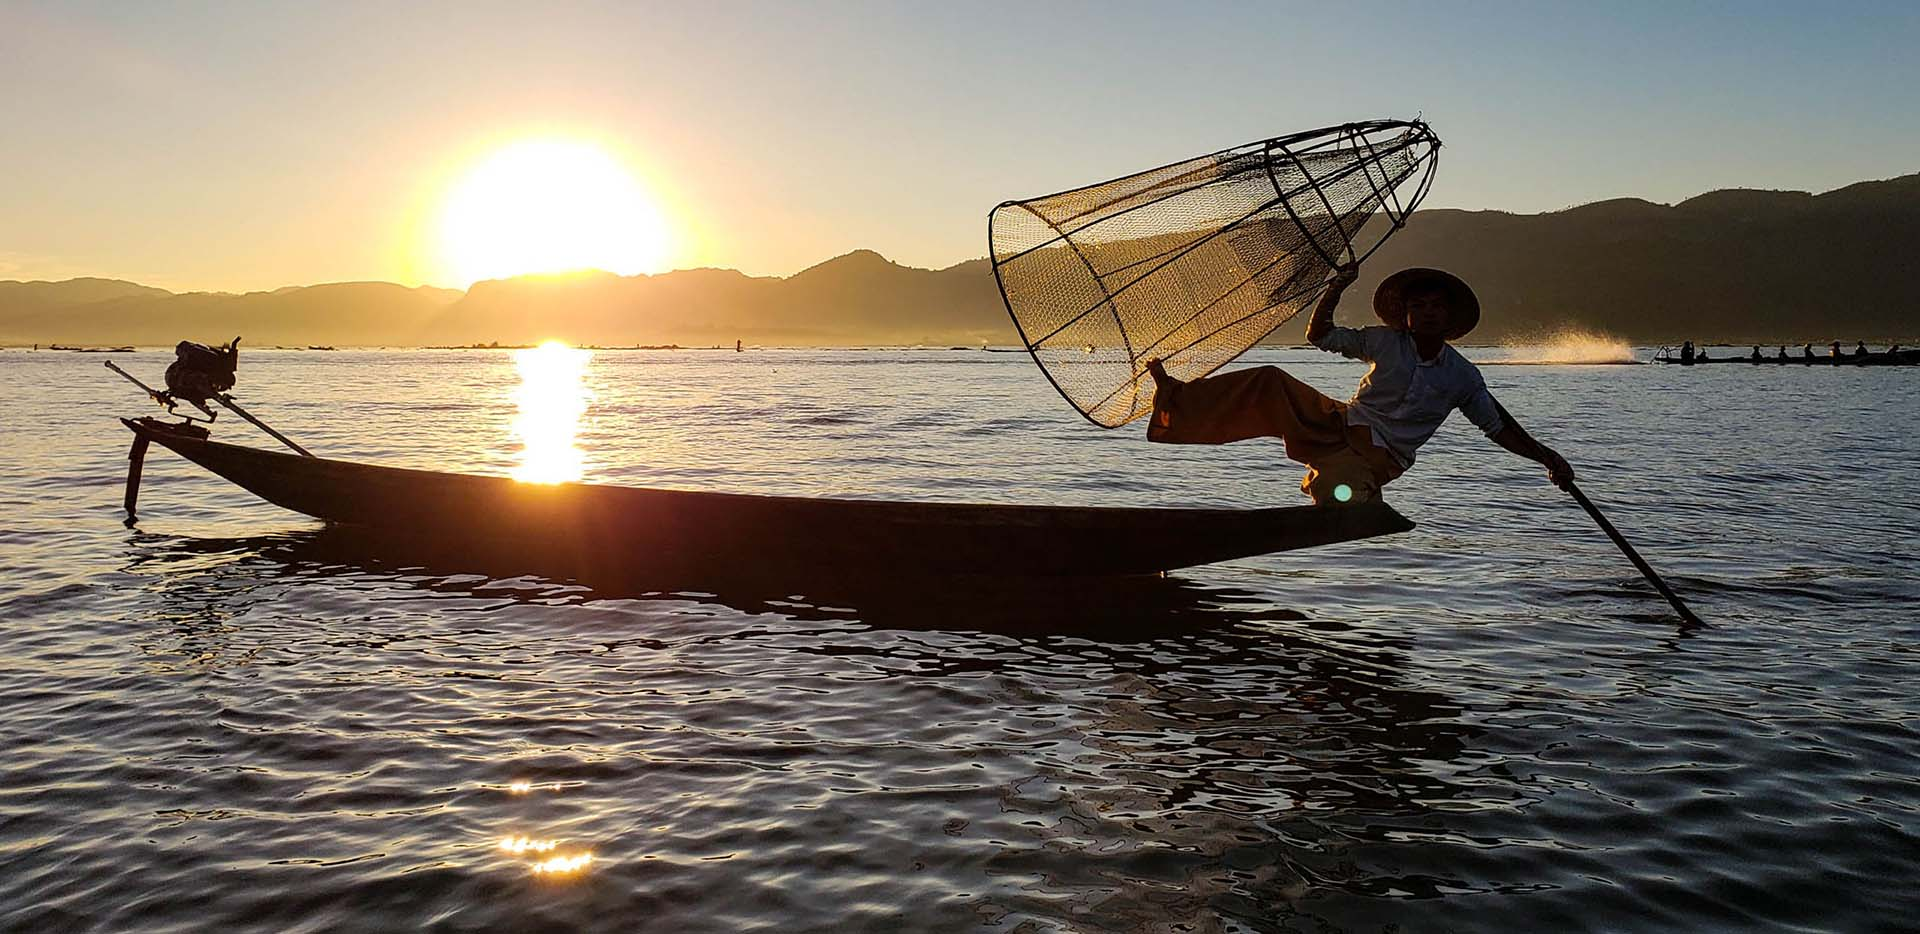 Leg Rowing Basket Fisherman at Sunset